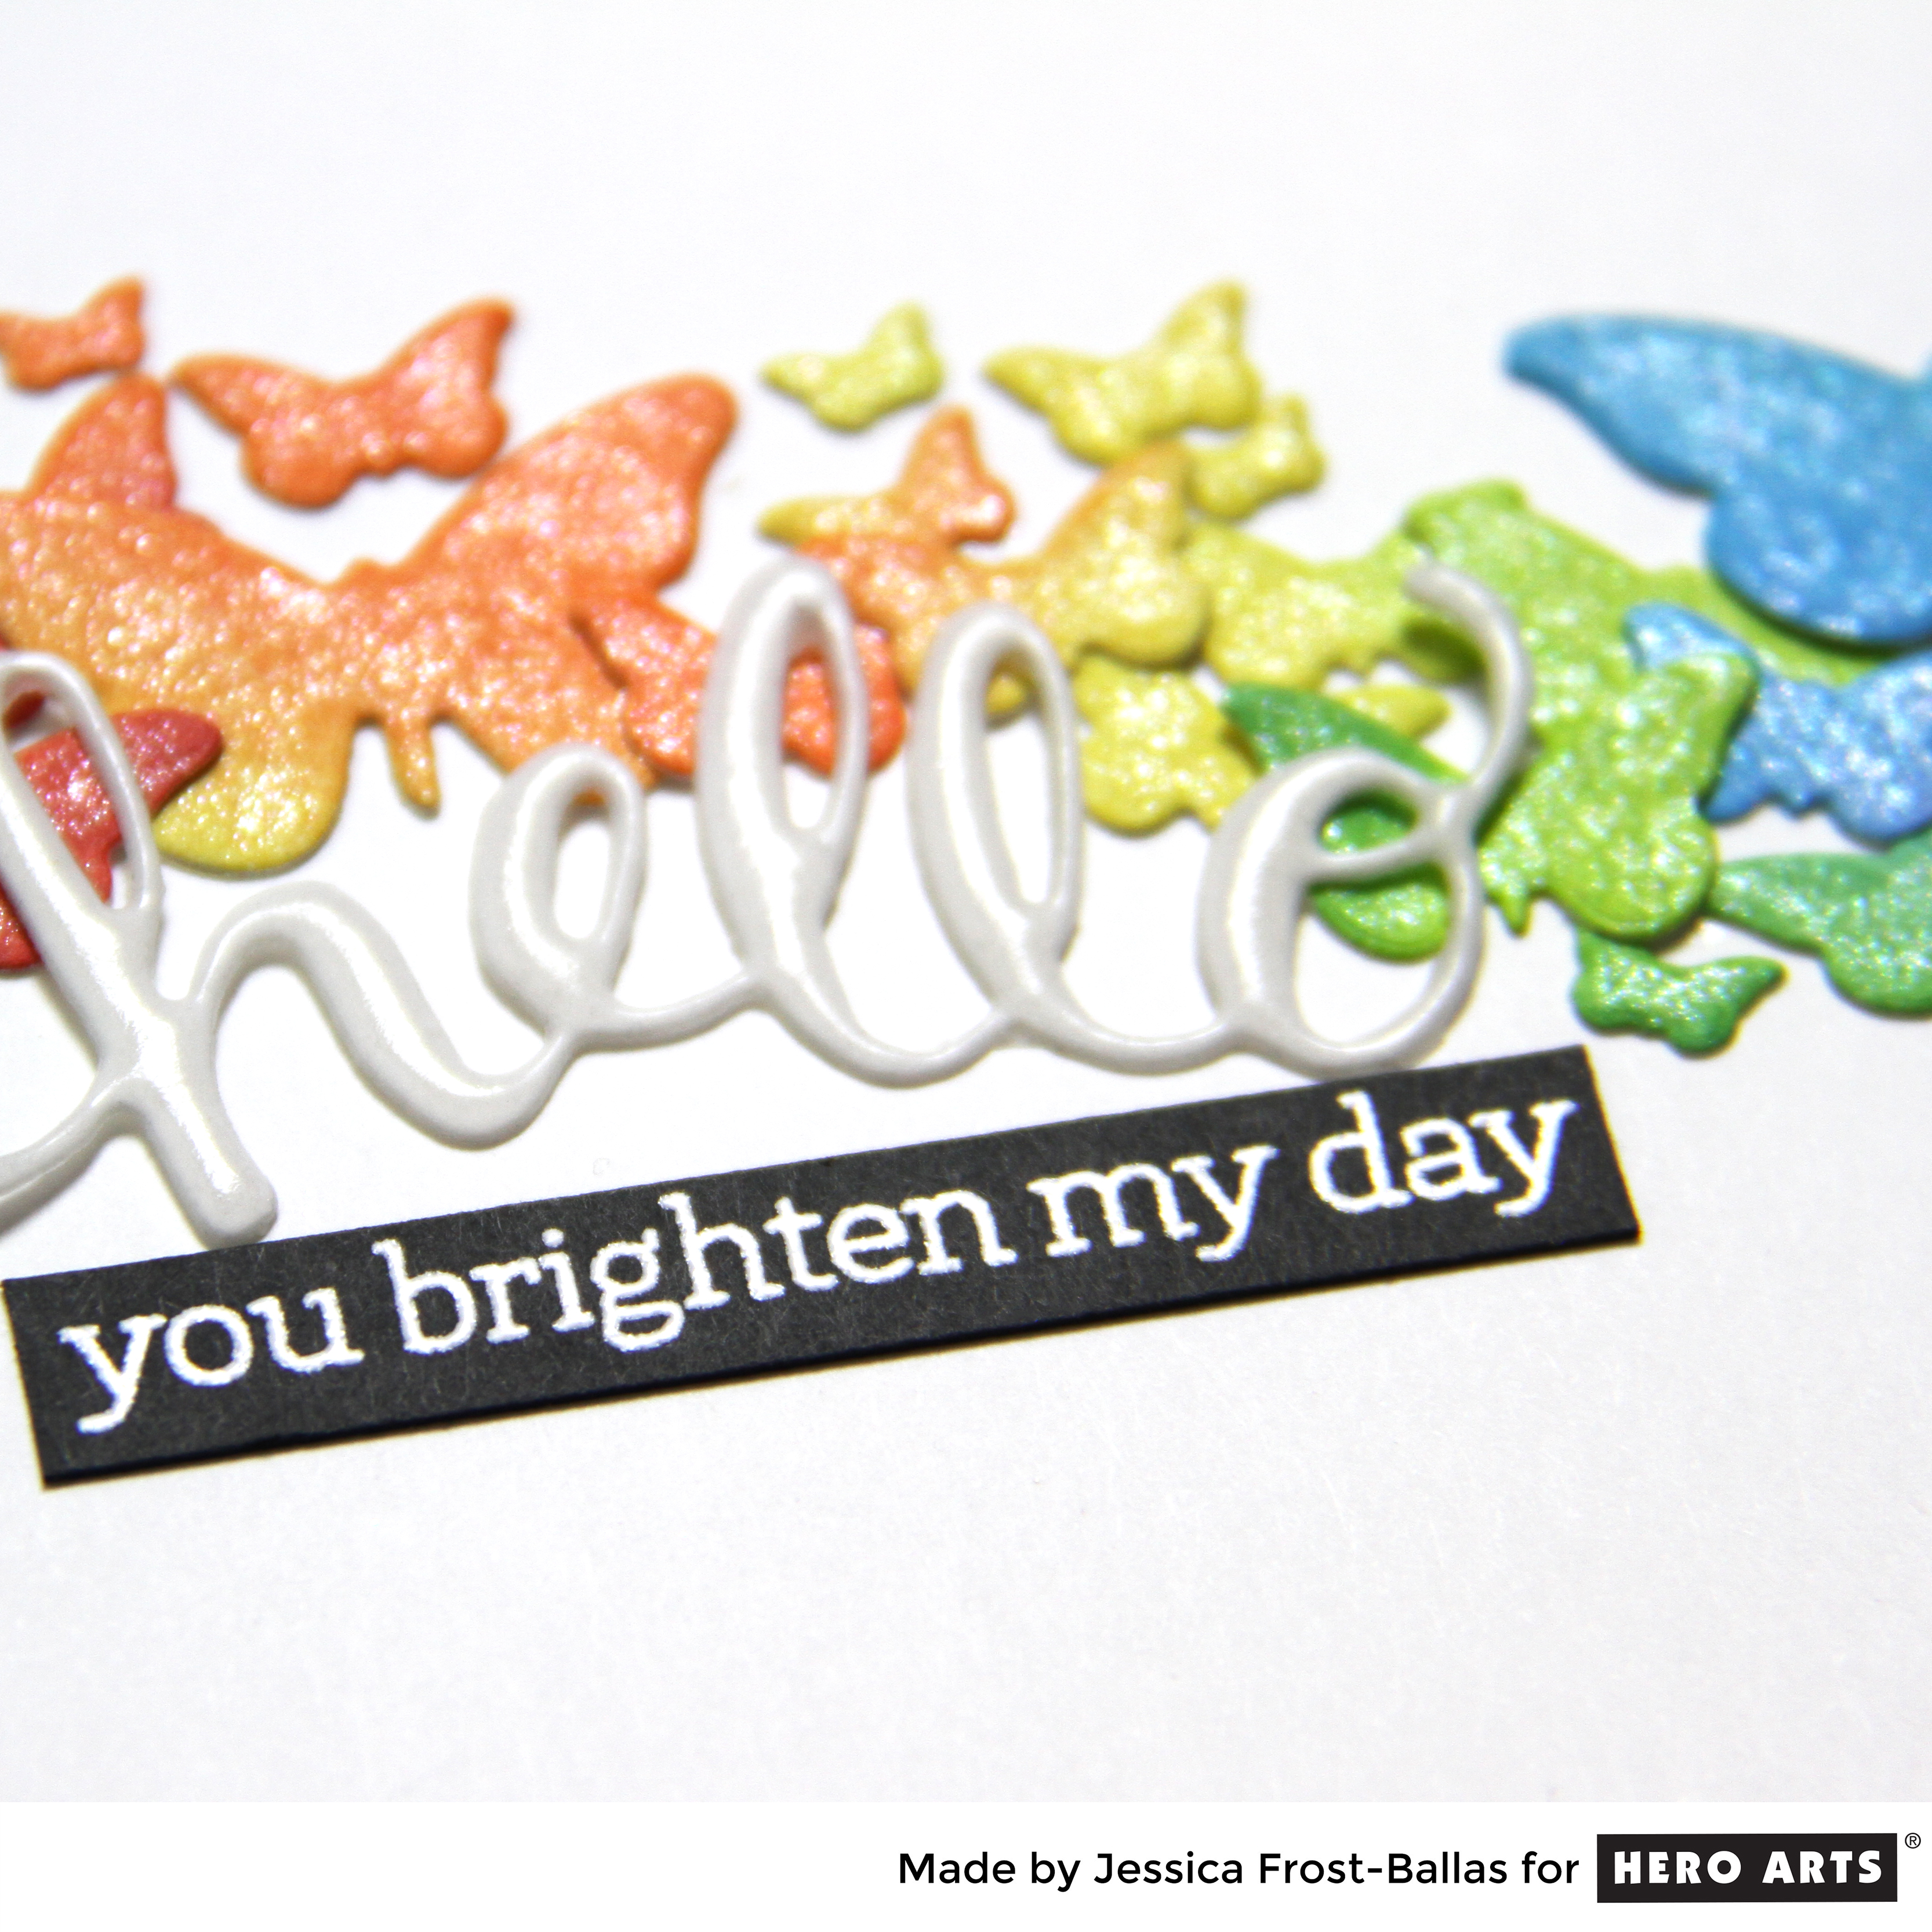 Hello You Brighten My Day by Jessica Frost-Ballas for Hero Arts